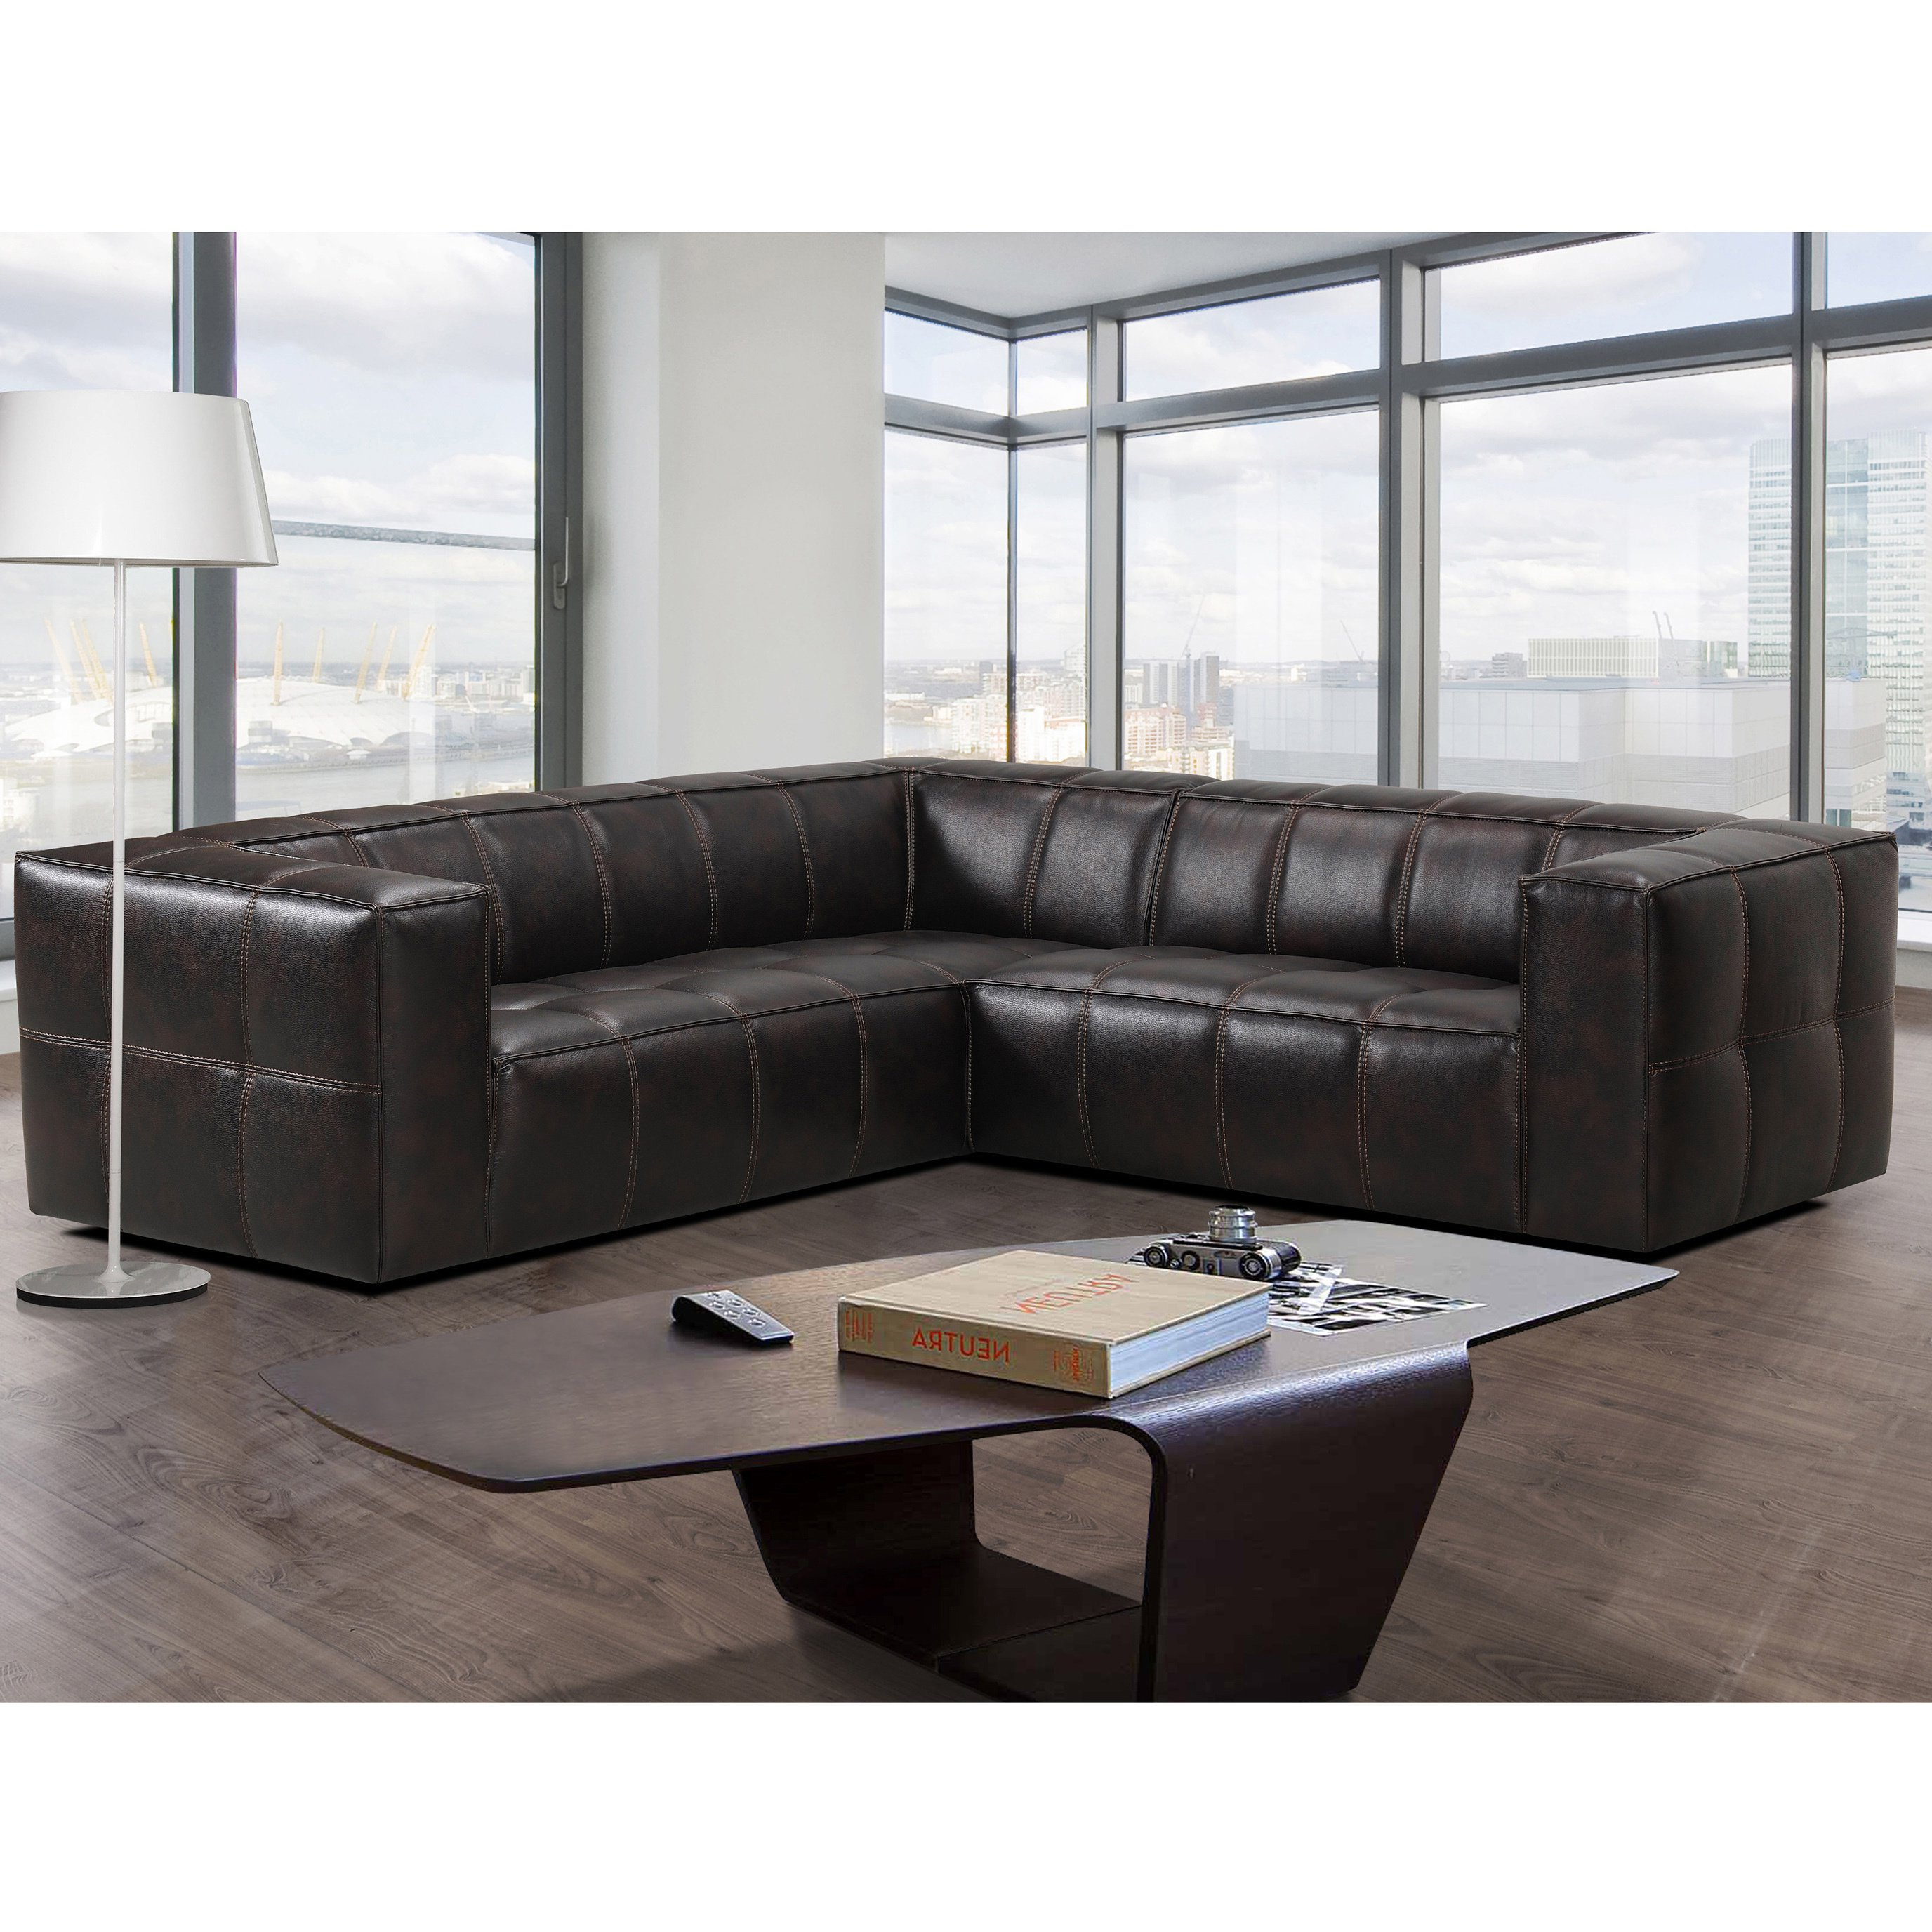 Widely Used Mesa Foam 2 Piece Sectionals Regarding Shop Athens Memory Foam Sectional Sofa – Free Shipping Today (View 20 of 20)